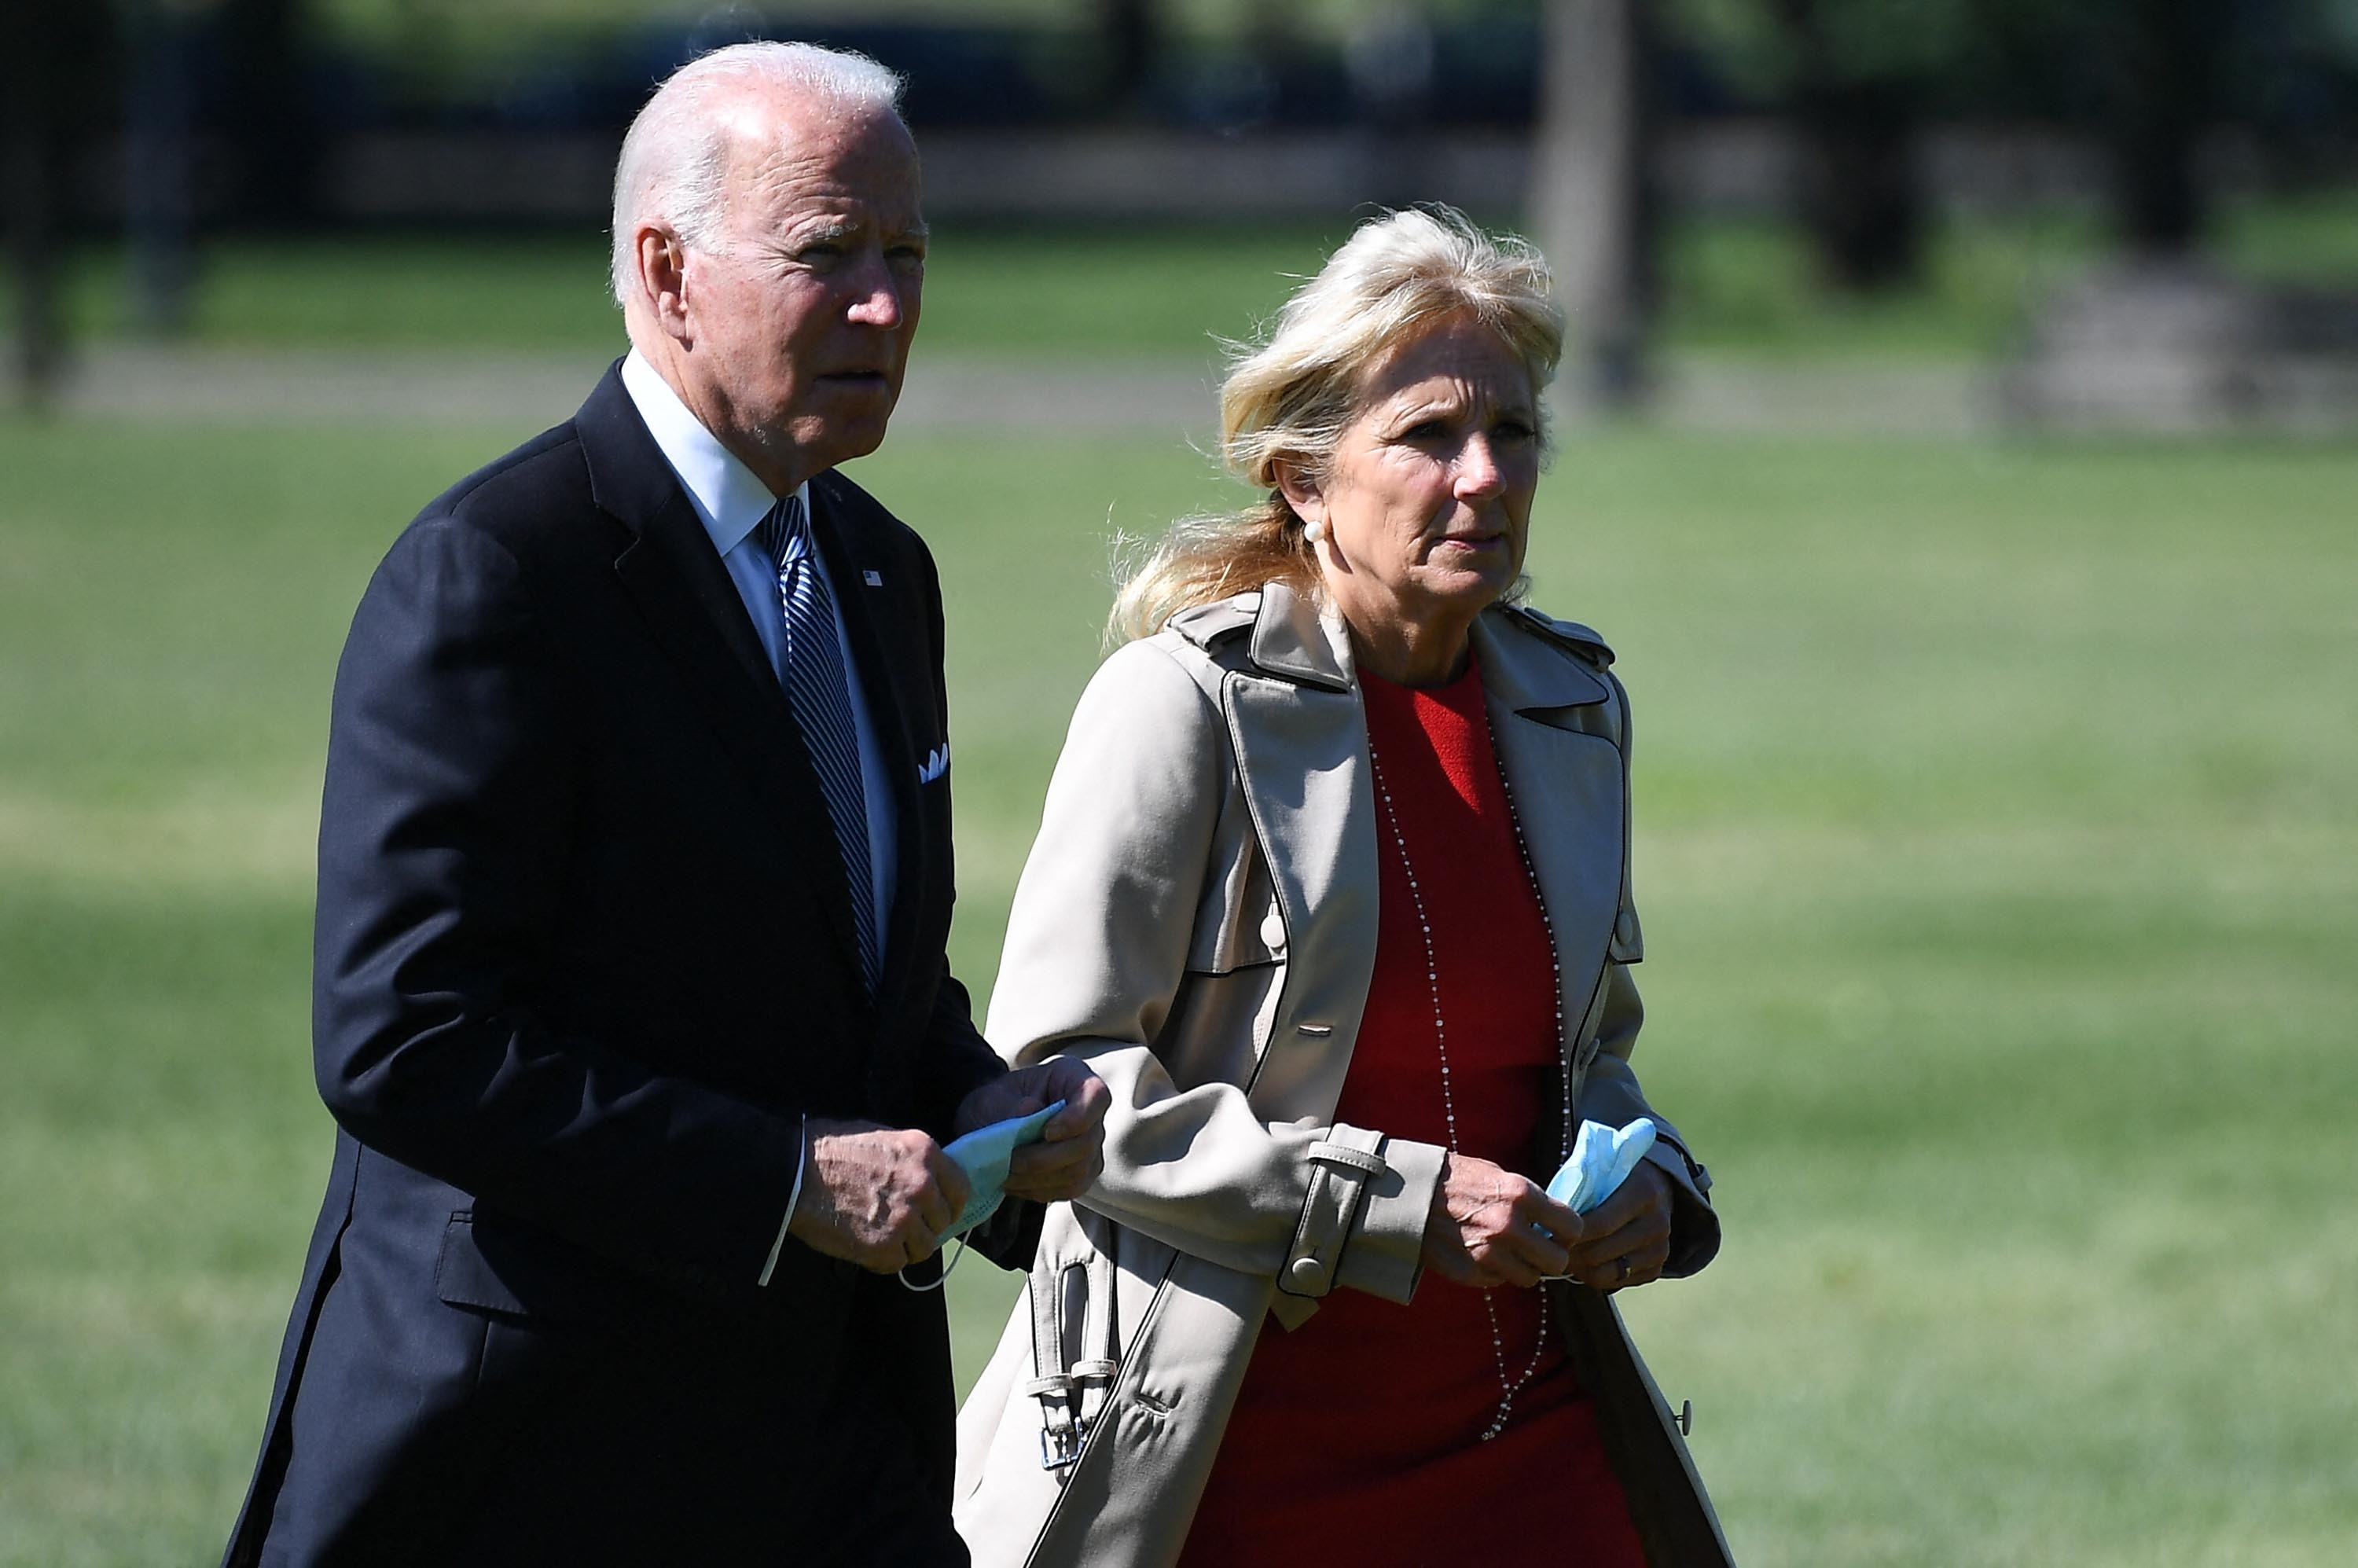 'Never give up hope': Biden reprises role as consoler-in-chief during South Florida visit